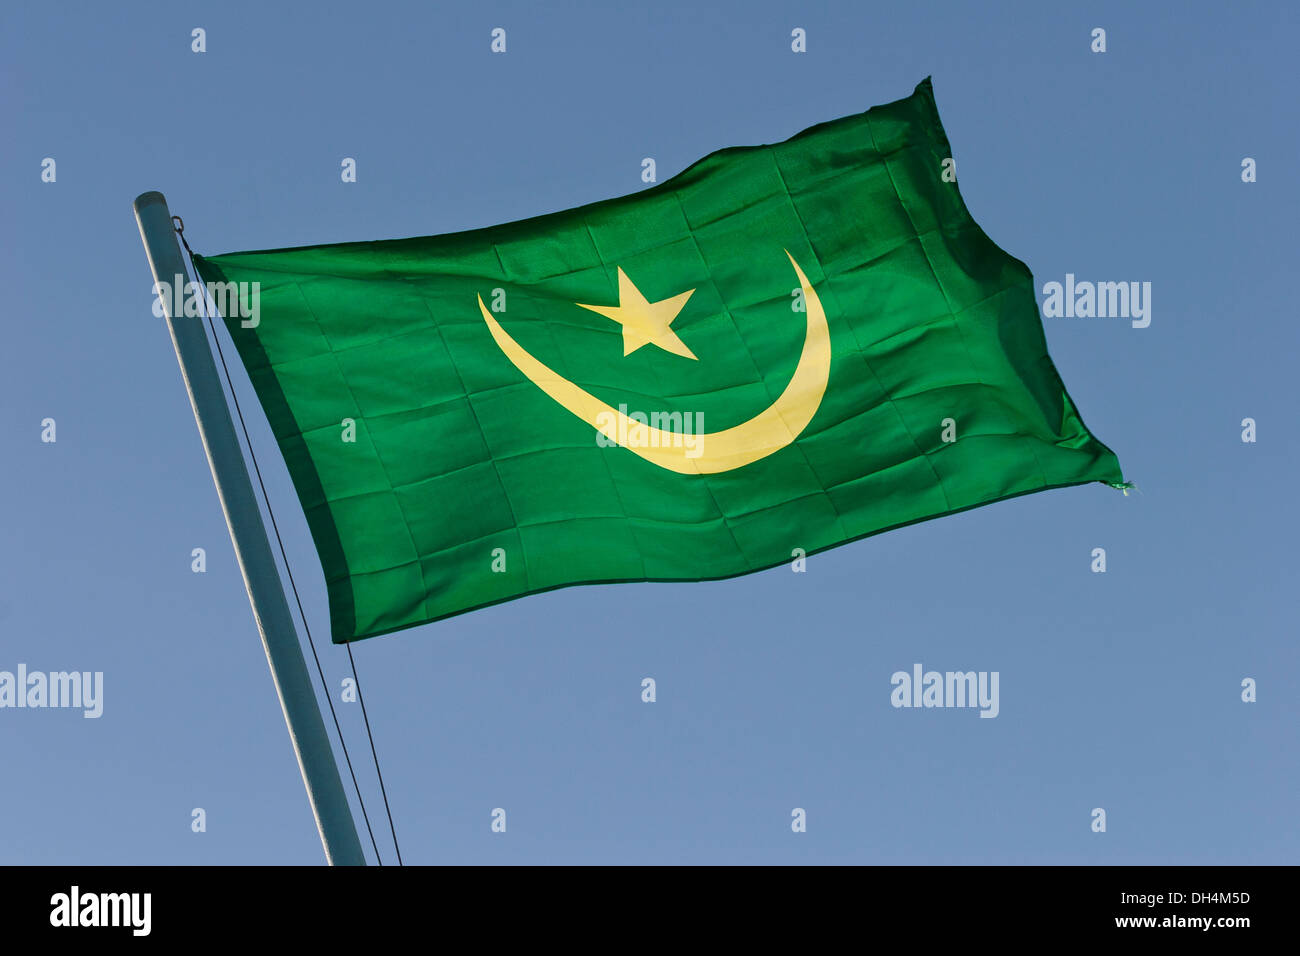 National flag of Mauritania, North West Africa - Stock Image